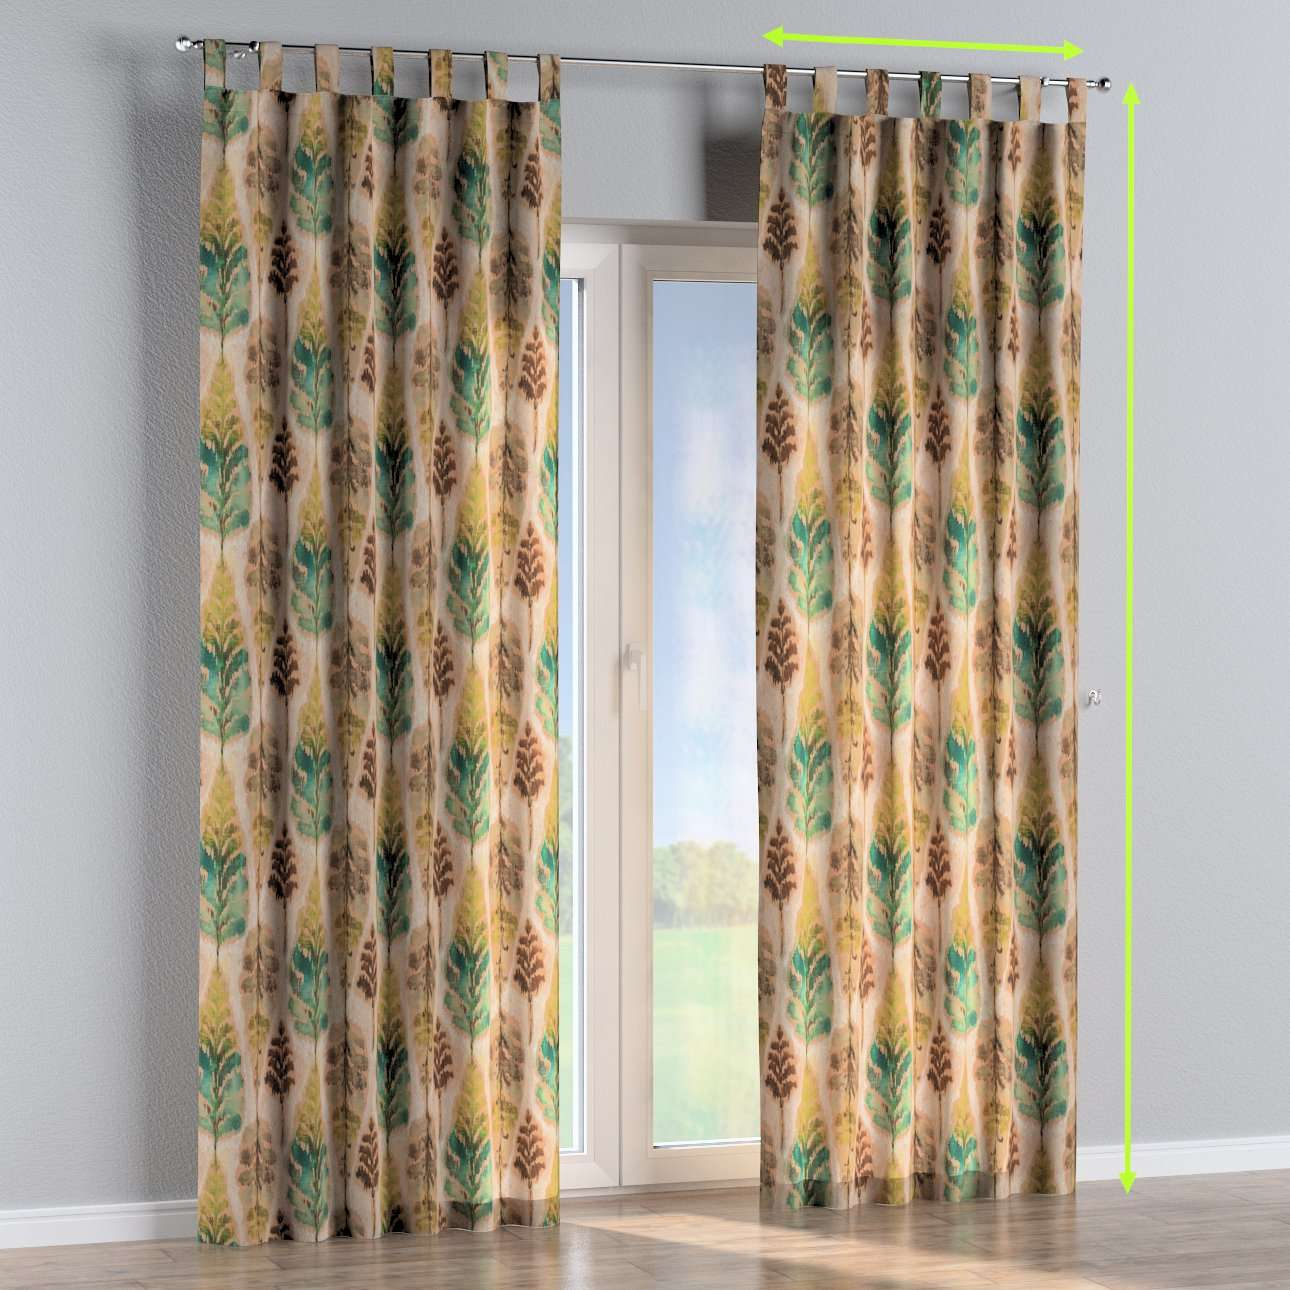 Tab top curtains in collection Urban Jungle, fabric: 141-60